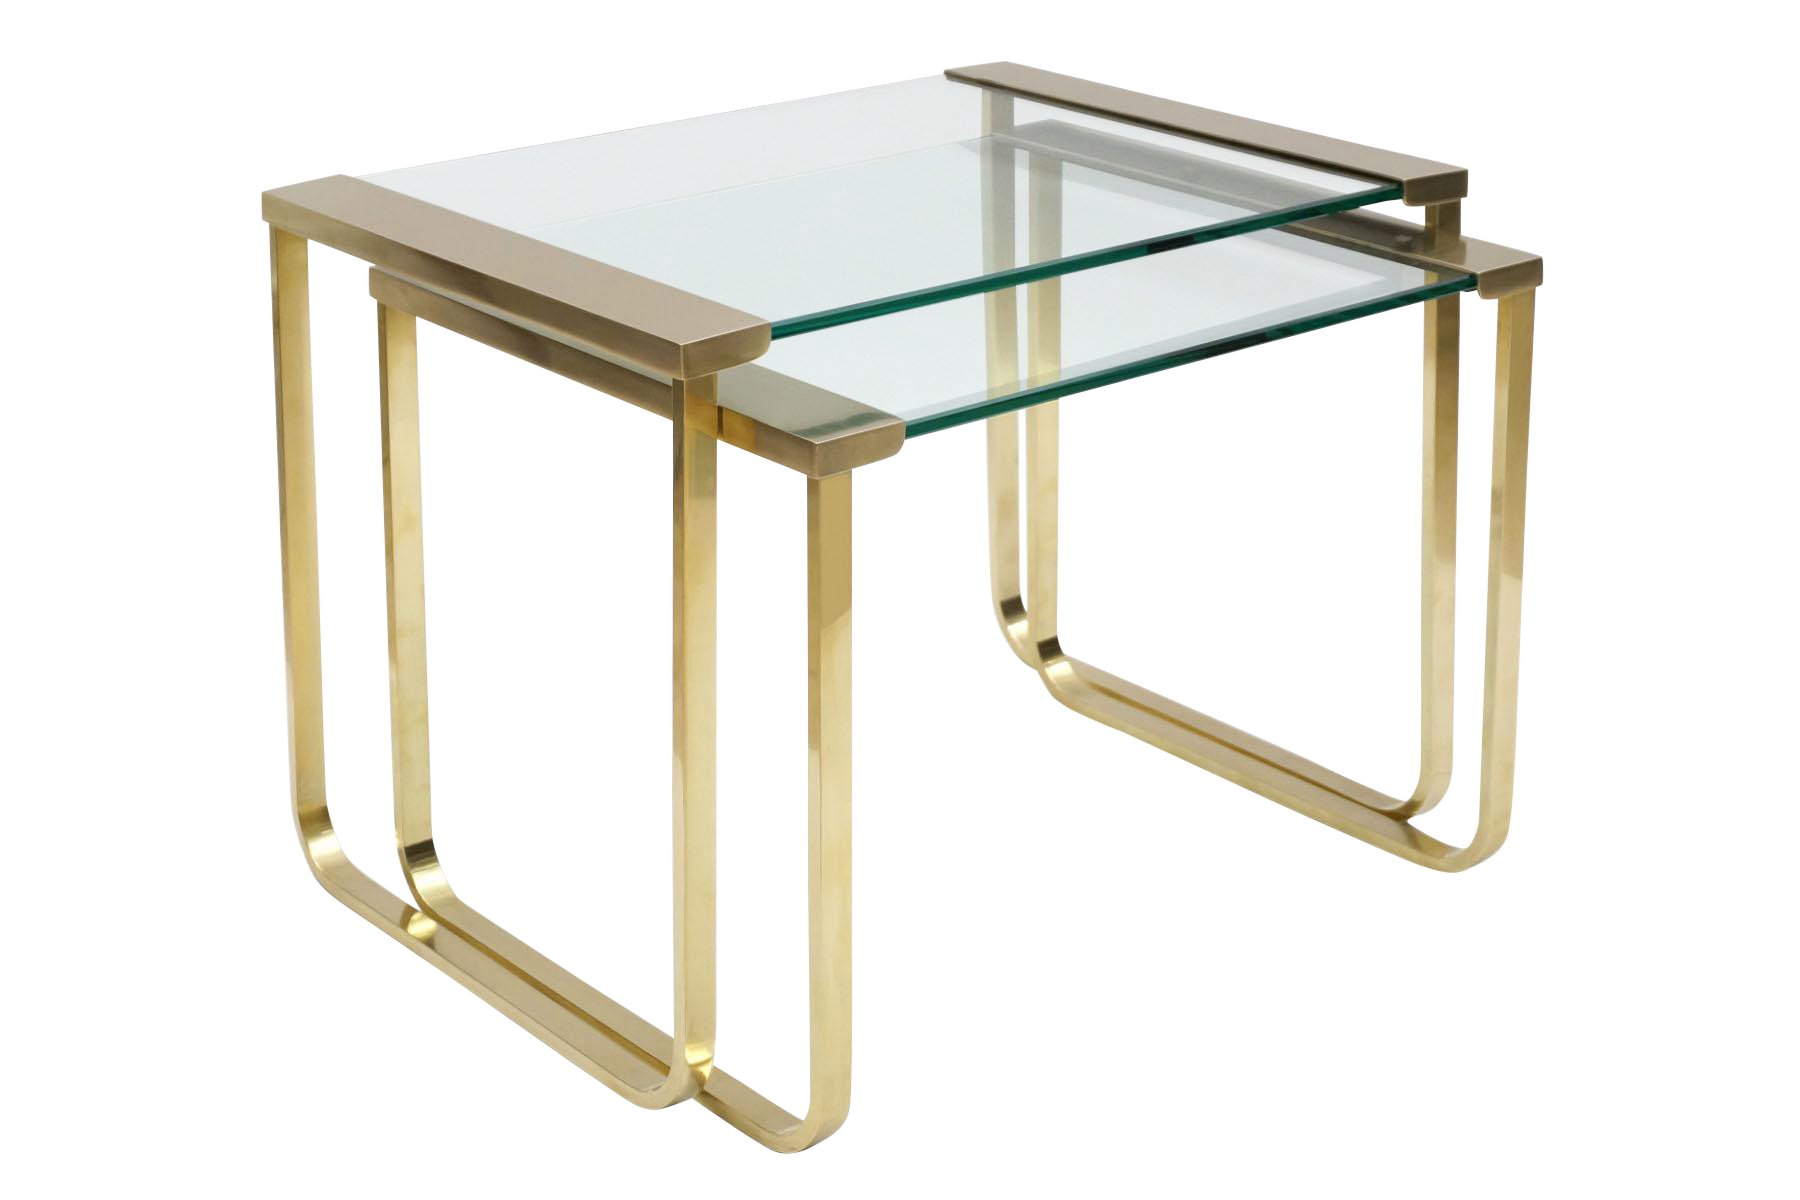 Italian Mid-century Brass and Glass Nesting Tables by Sergio Mazza for Cinova - vintage furniture - vintage tables - vintage side tables - antique tables - antique furniture - brass side tables - luxury furniture